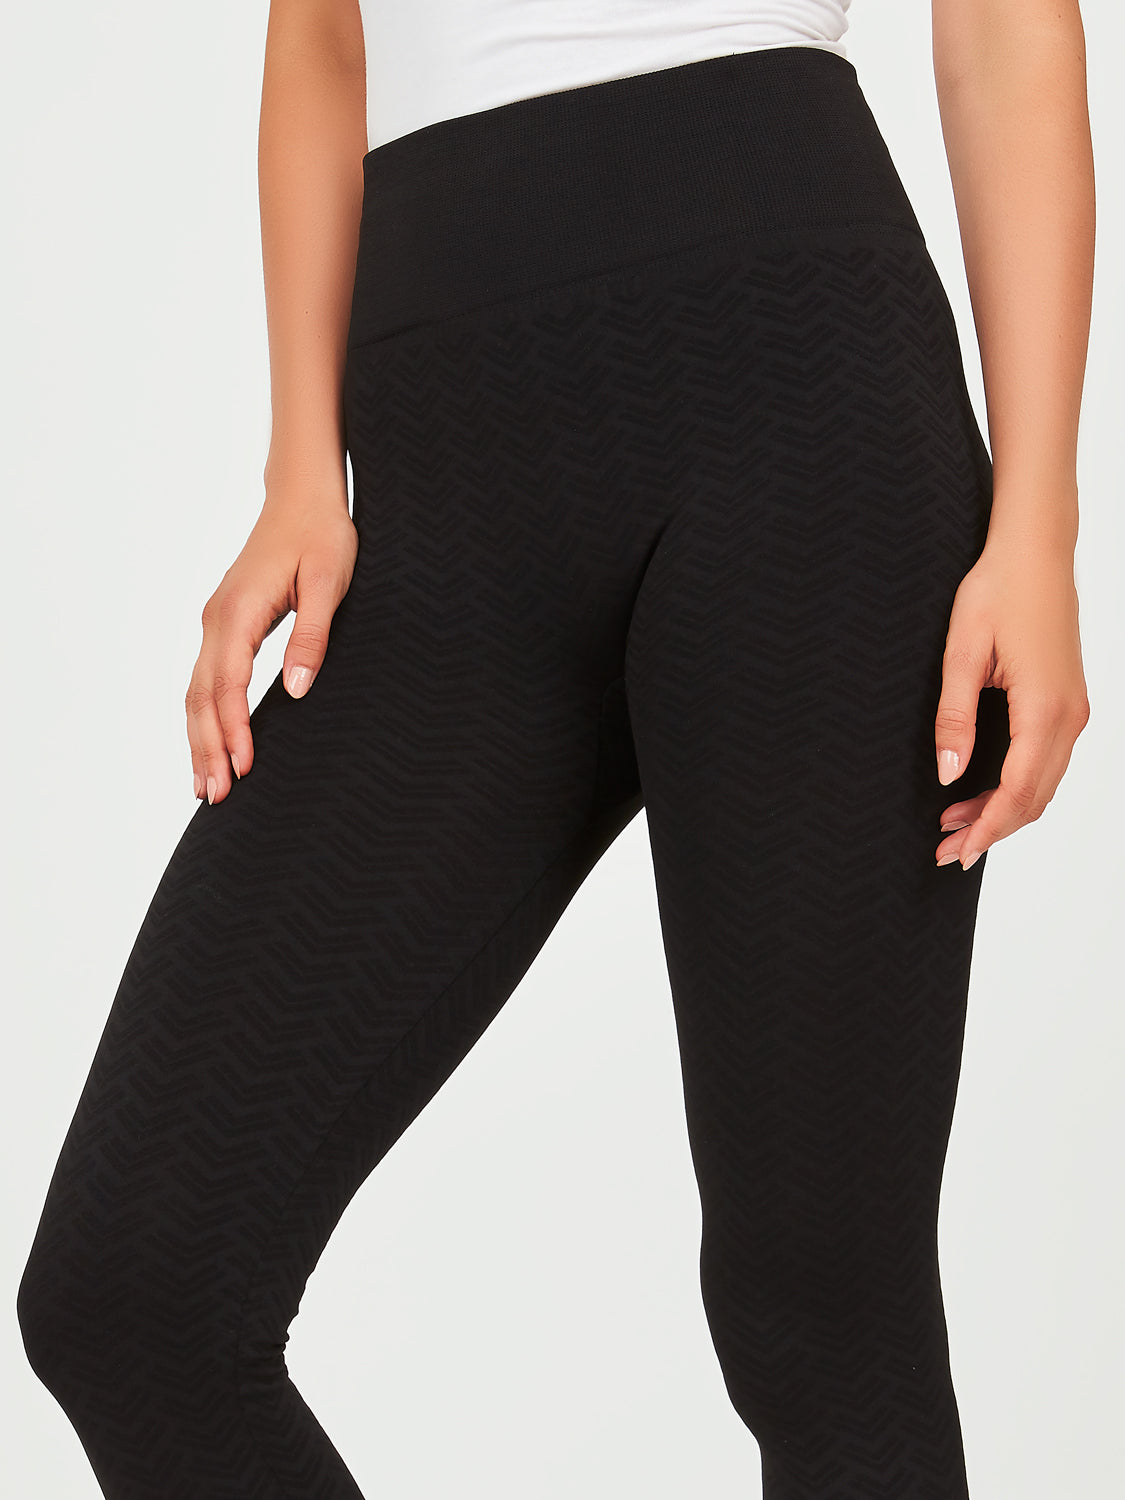 Patterned Brushed Back Leggings